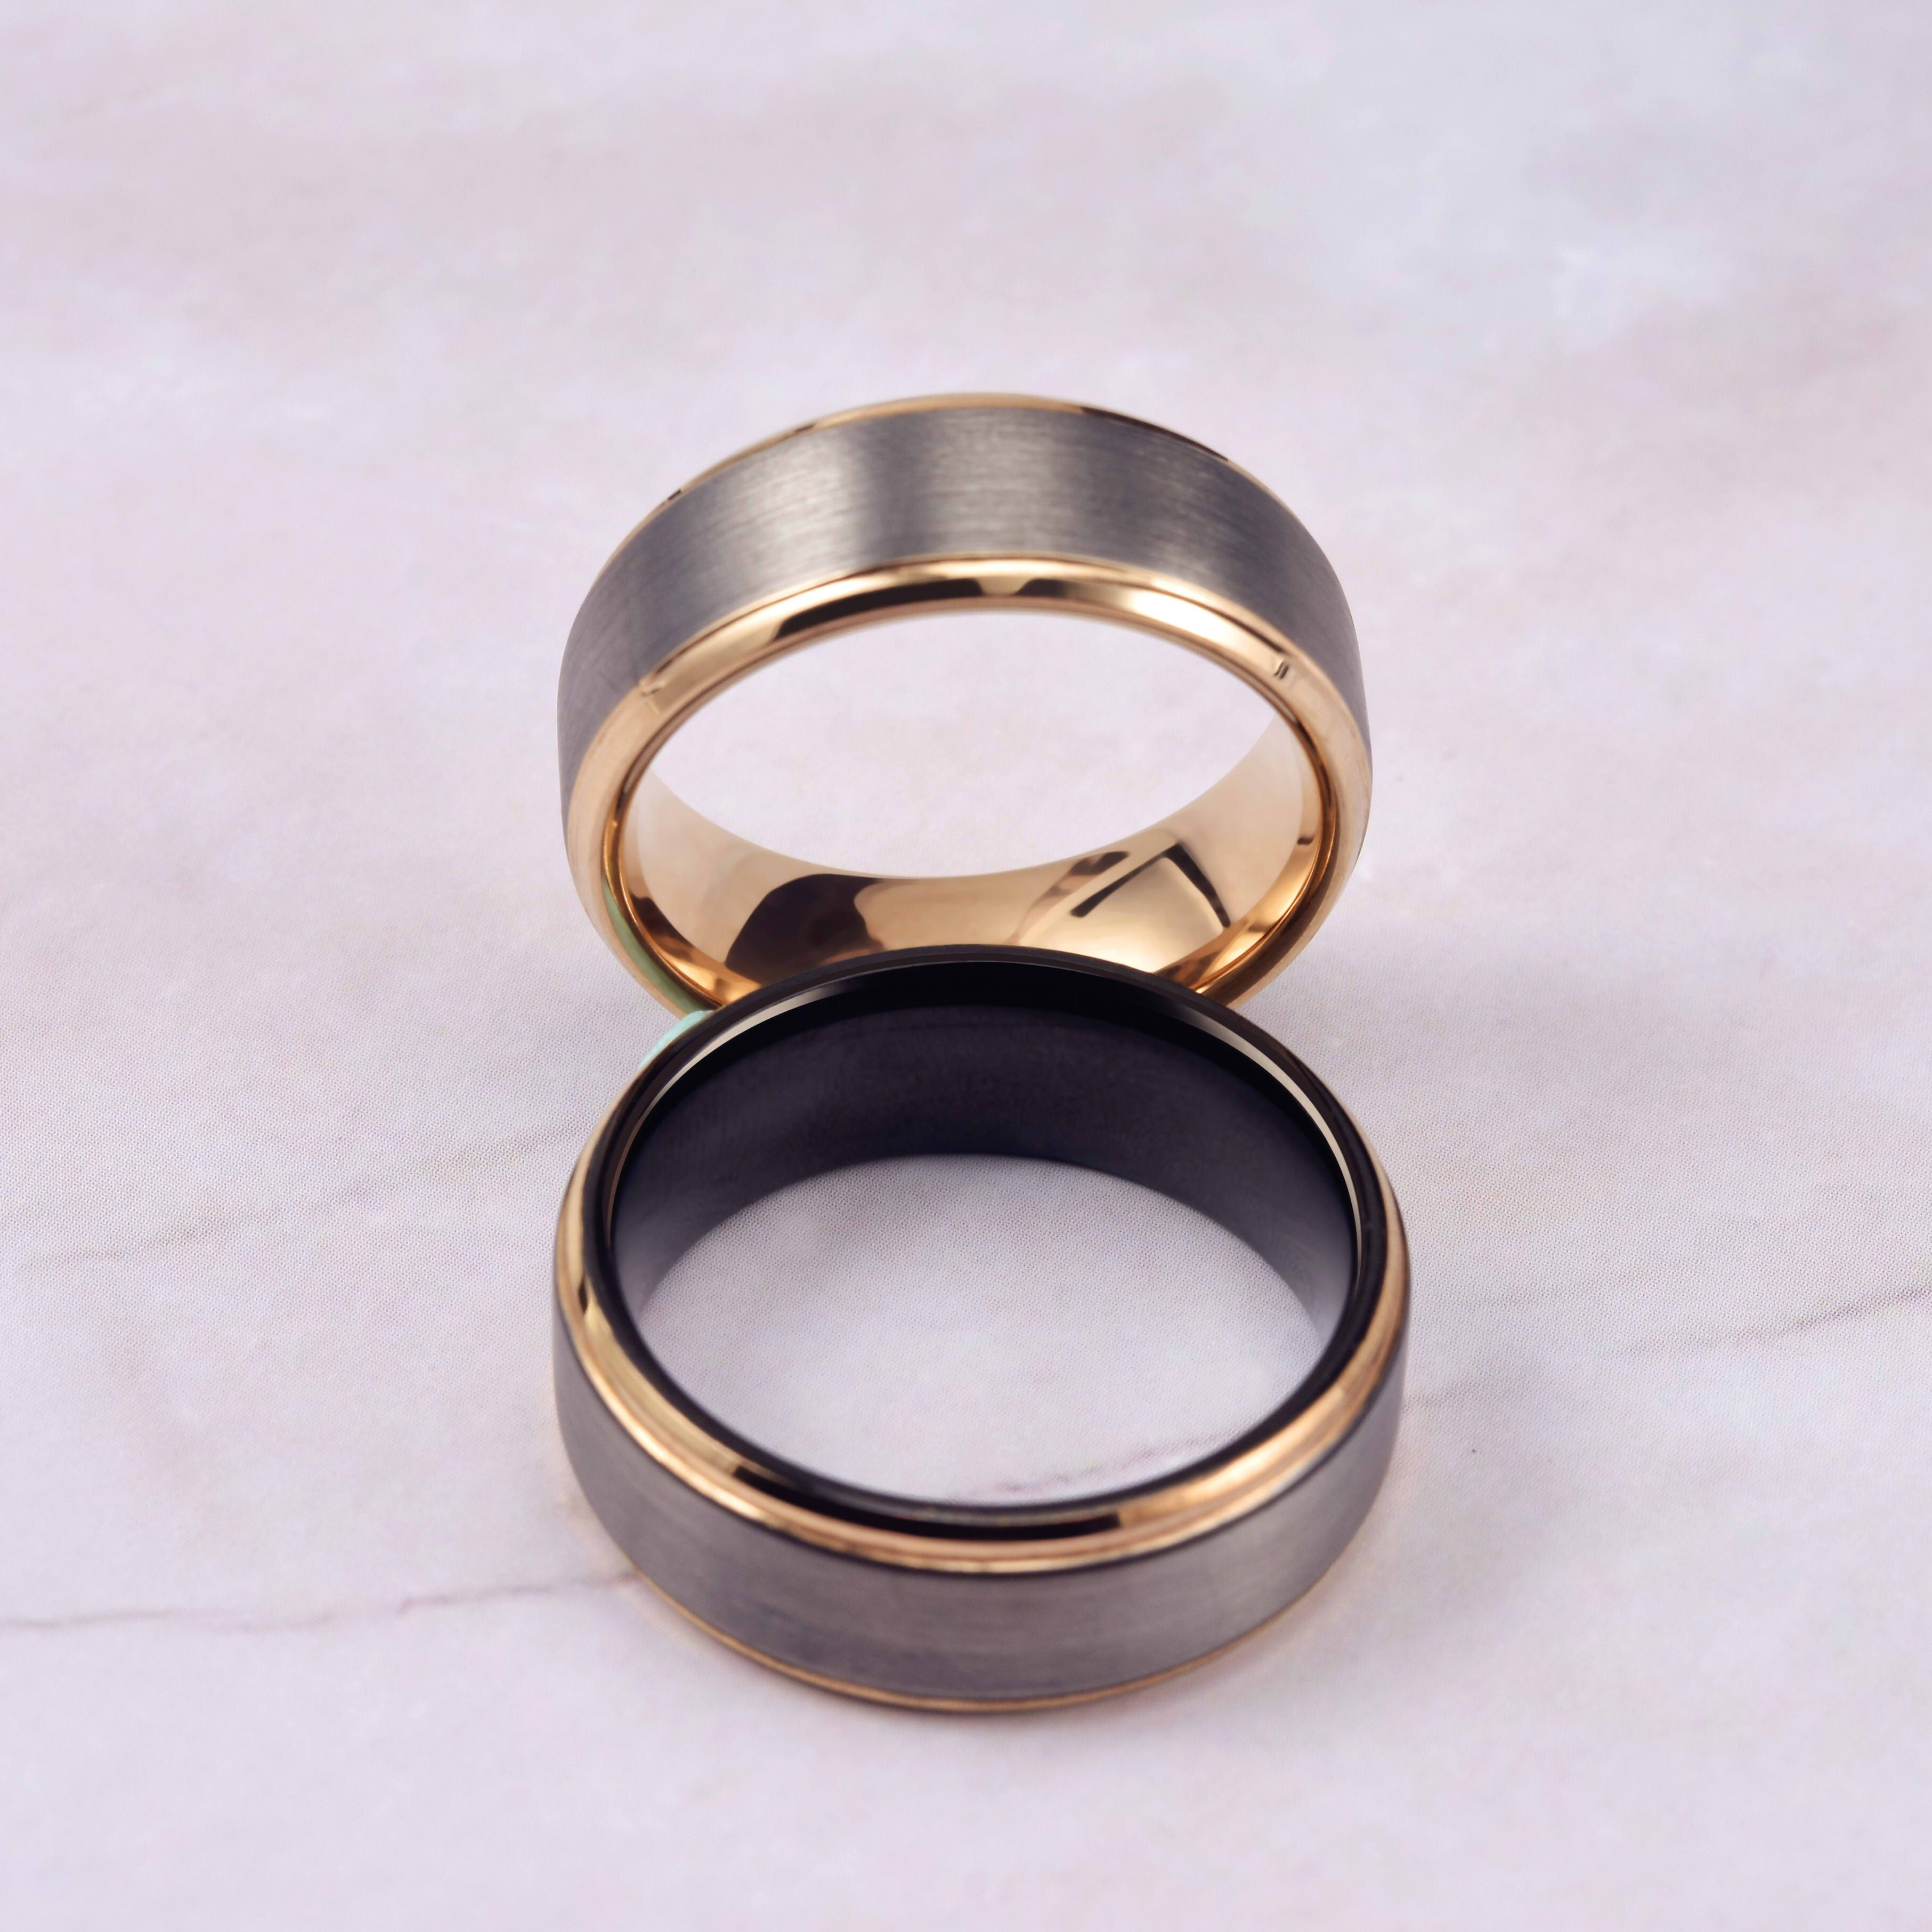 King Will DUO Mens 8mm Brushed Finish Tungsten Carbide